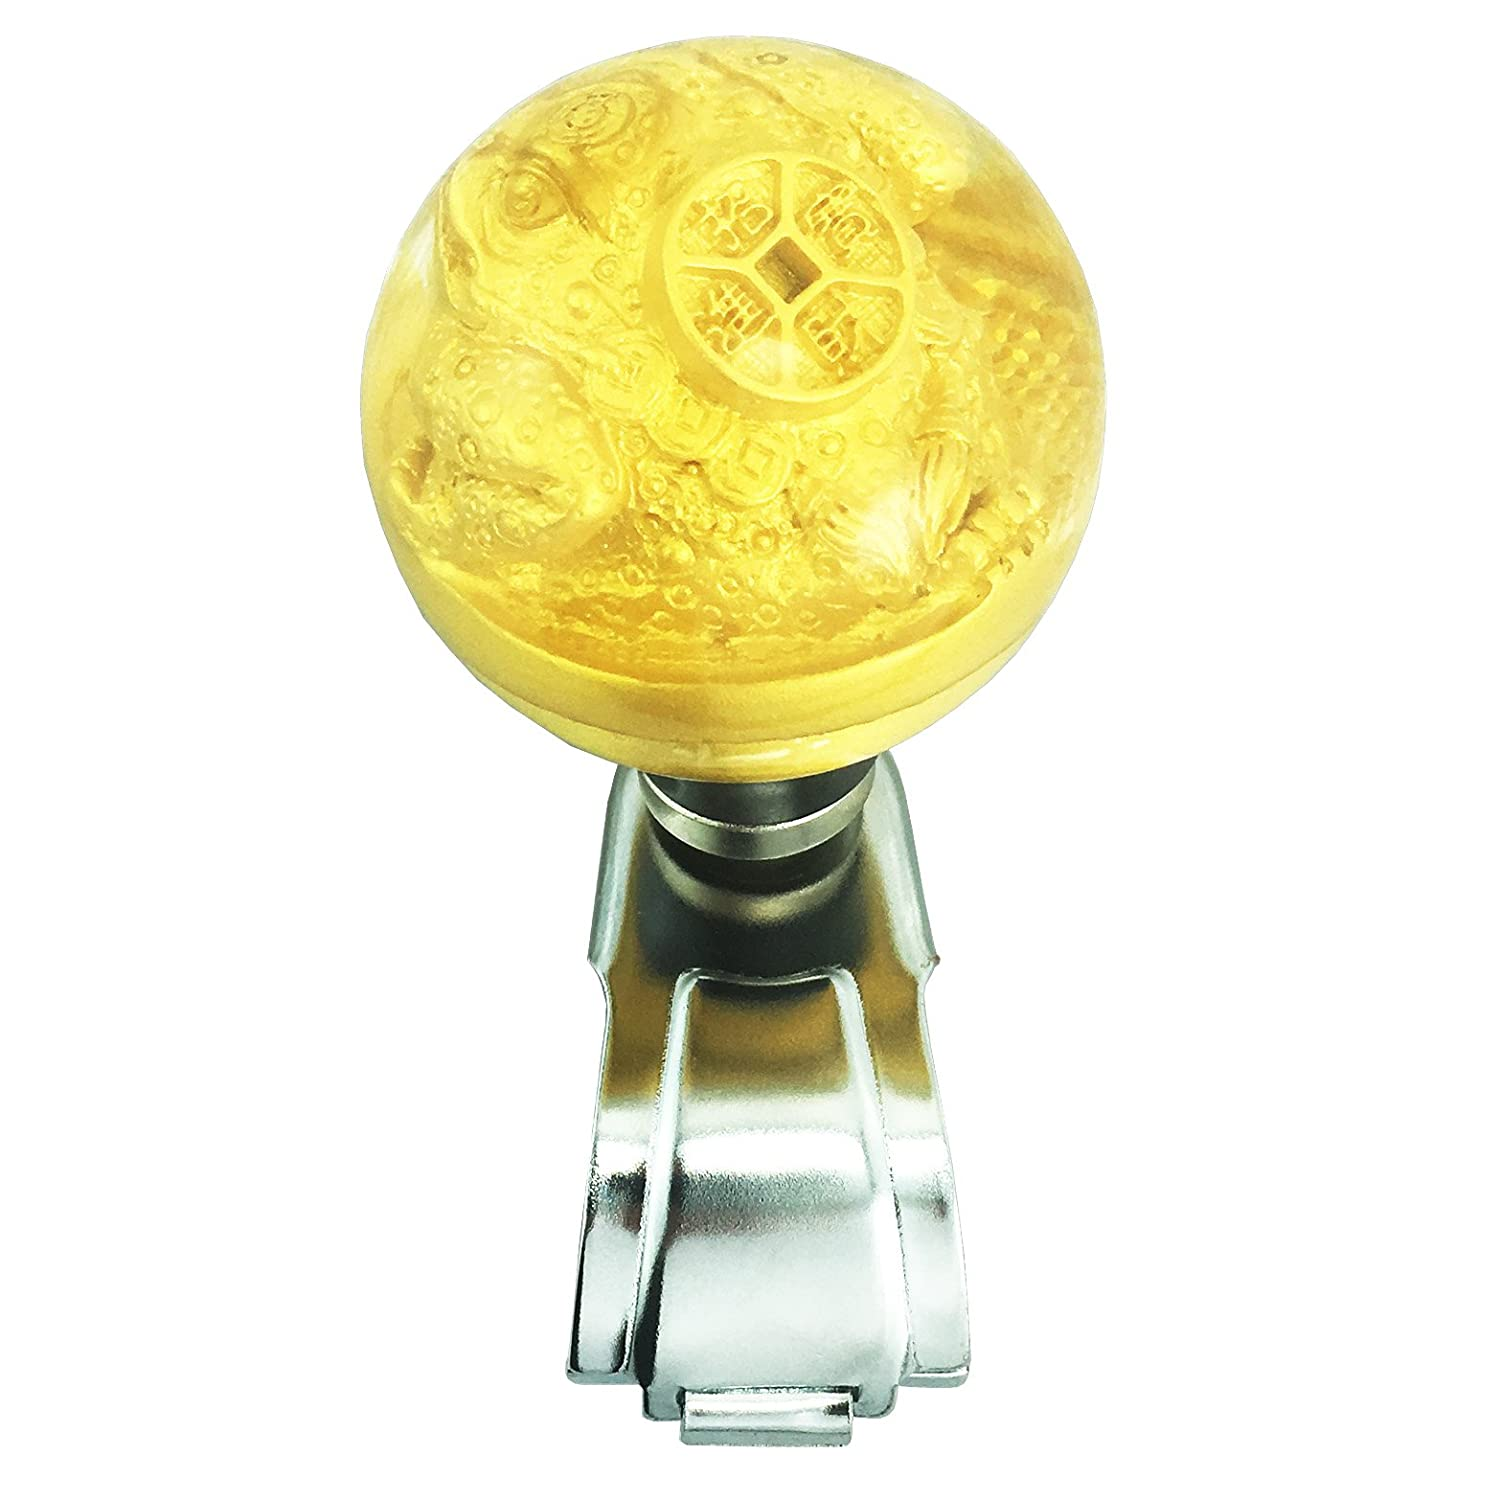 Arenbel Car Steering Wheel Spinner Ancient Country Coin Rotating Suicide Knob Spinners Mounted on Outside Rim of Steering Wheel ARK086-BL086A